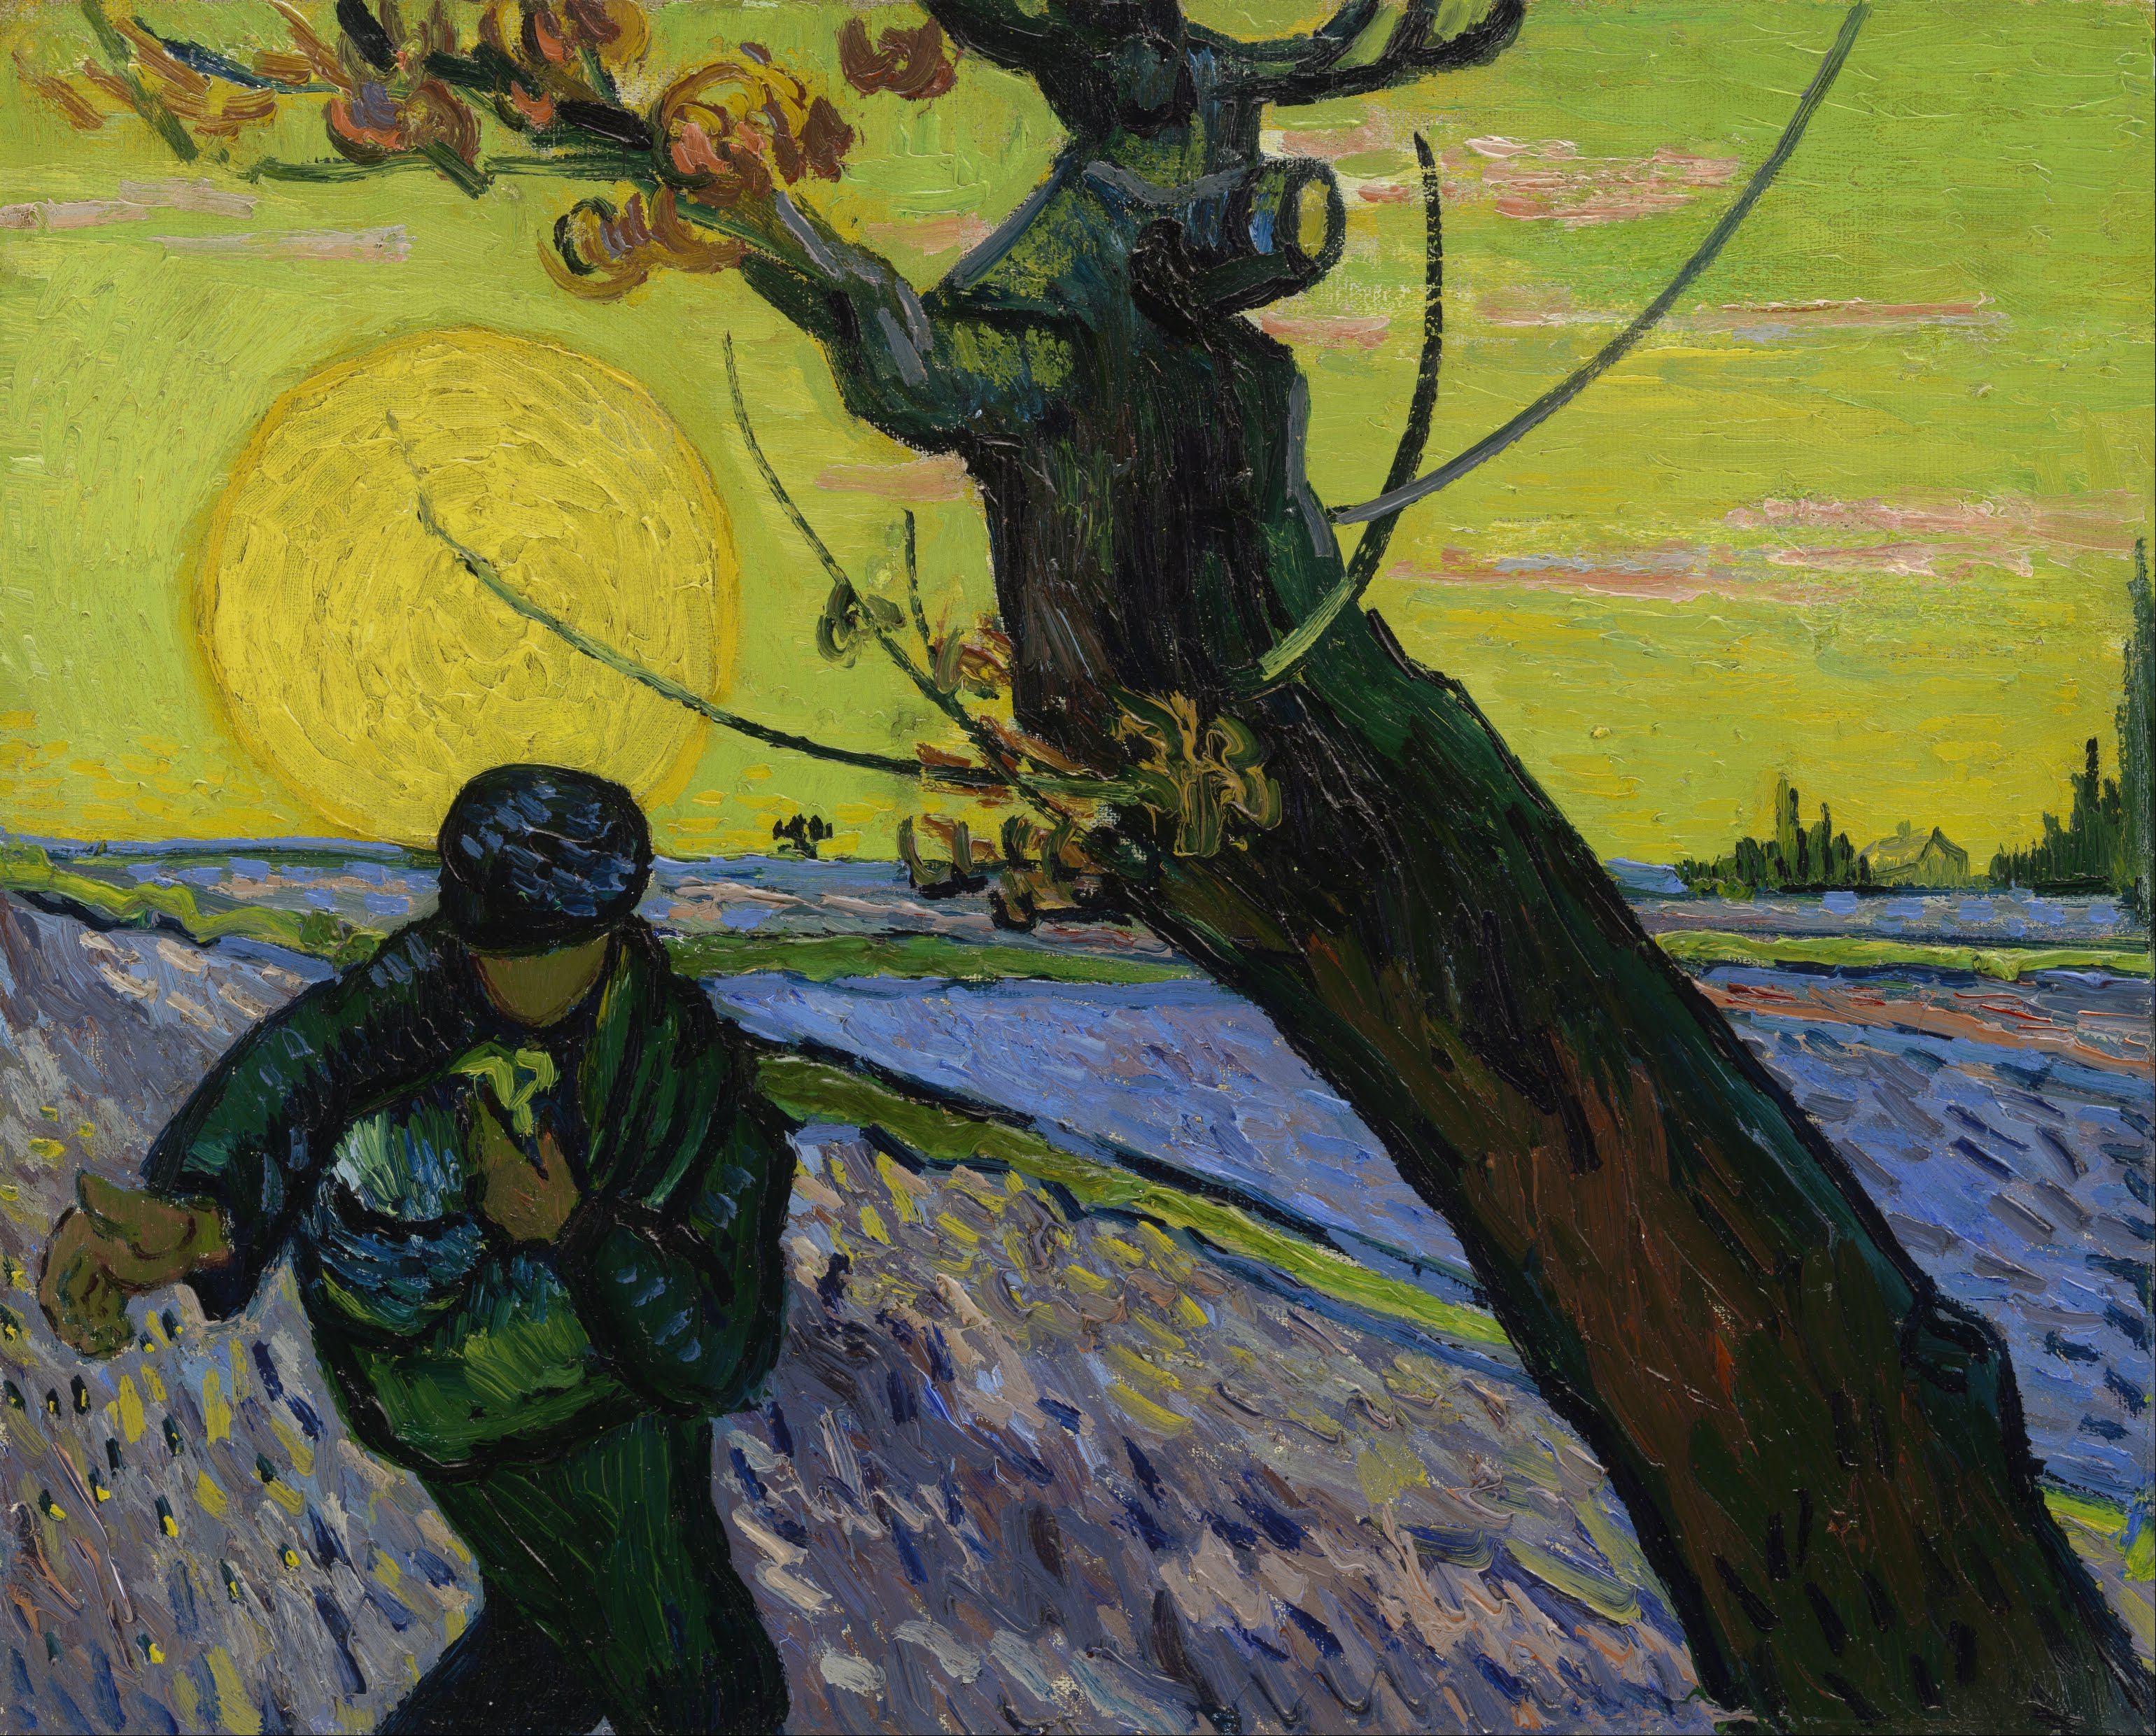 MyFrenchLife™ – MyFrenchLife.org - Paris in March - 2017 - Paris in spring - whats on - Vincent van Gogh - The Sower - Le Semeur - Art Exhibition